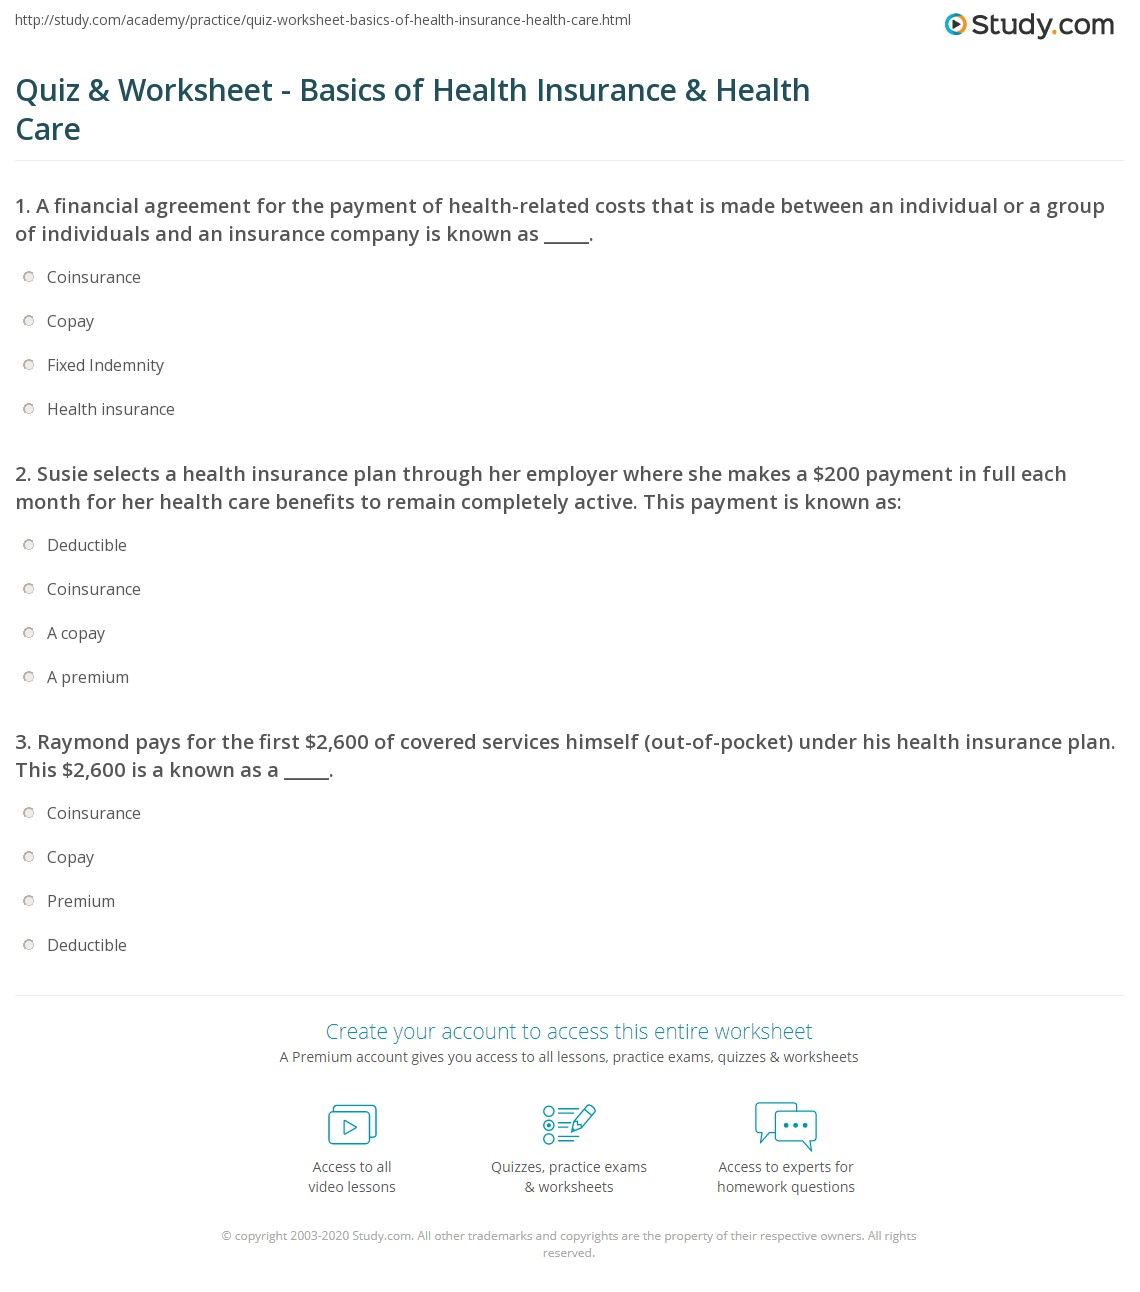 Quiz Worksheet Basics Of Health Insurance Health Care